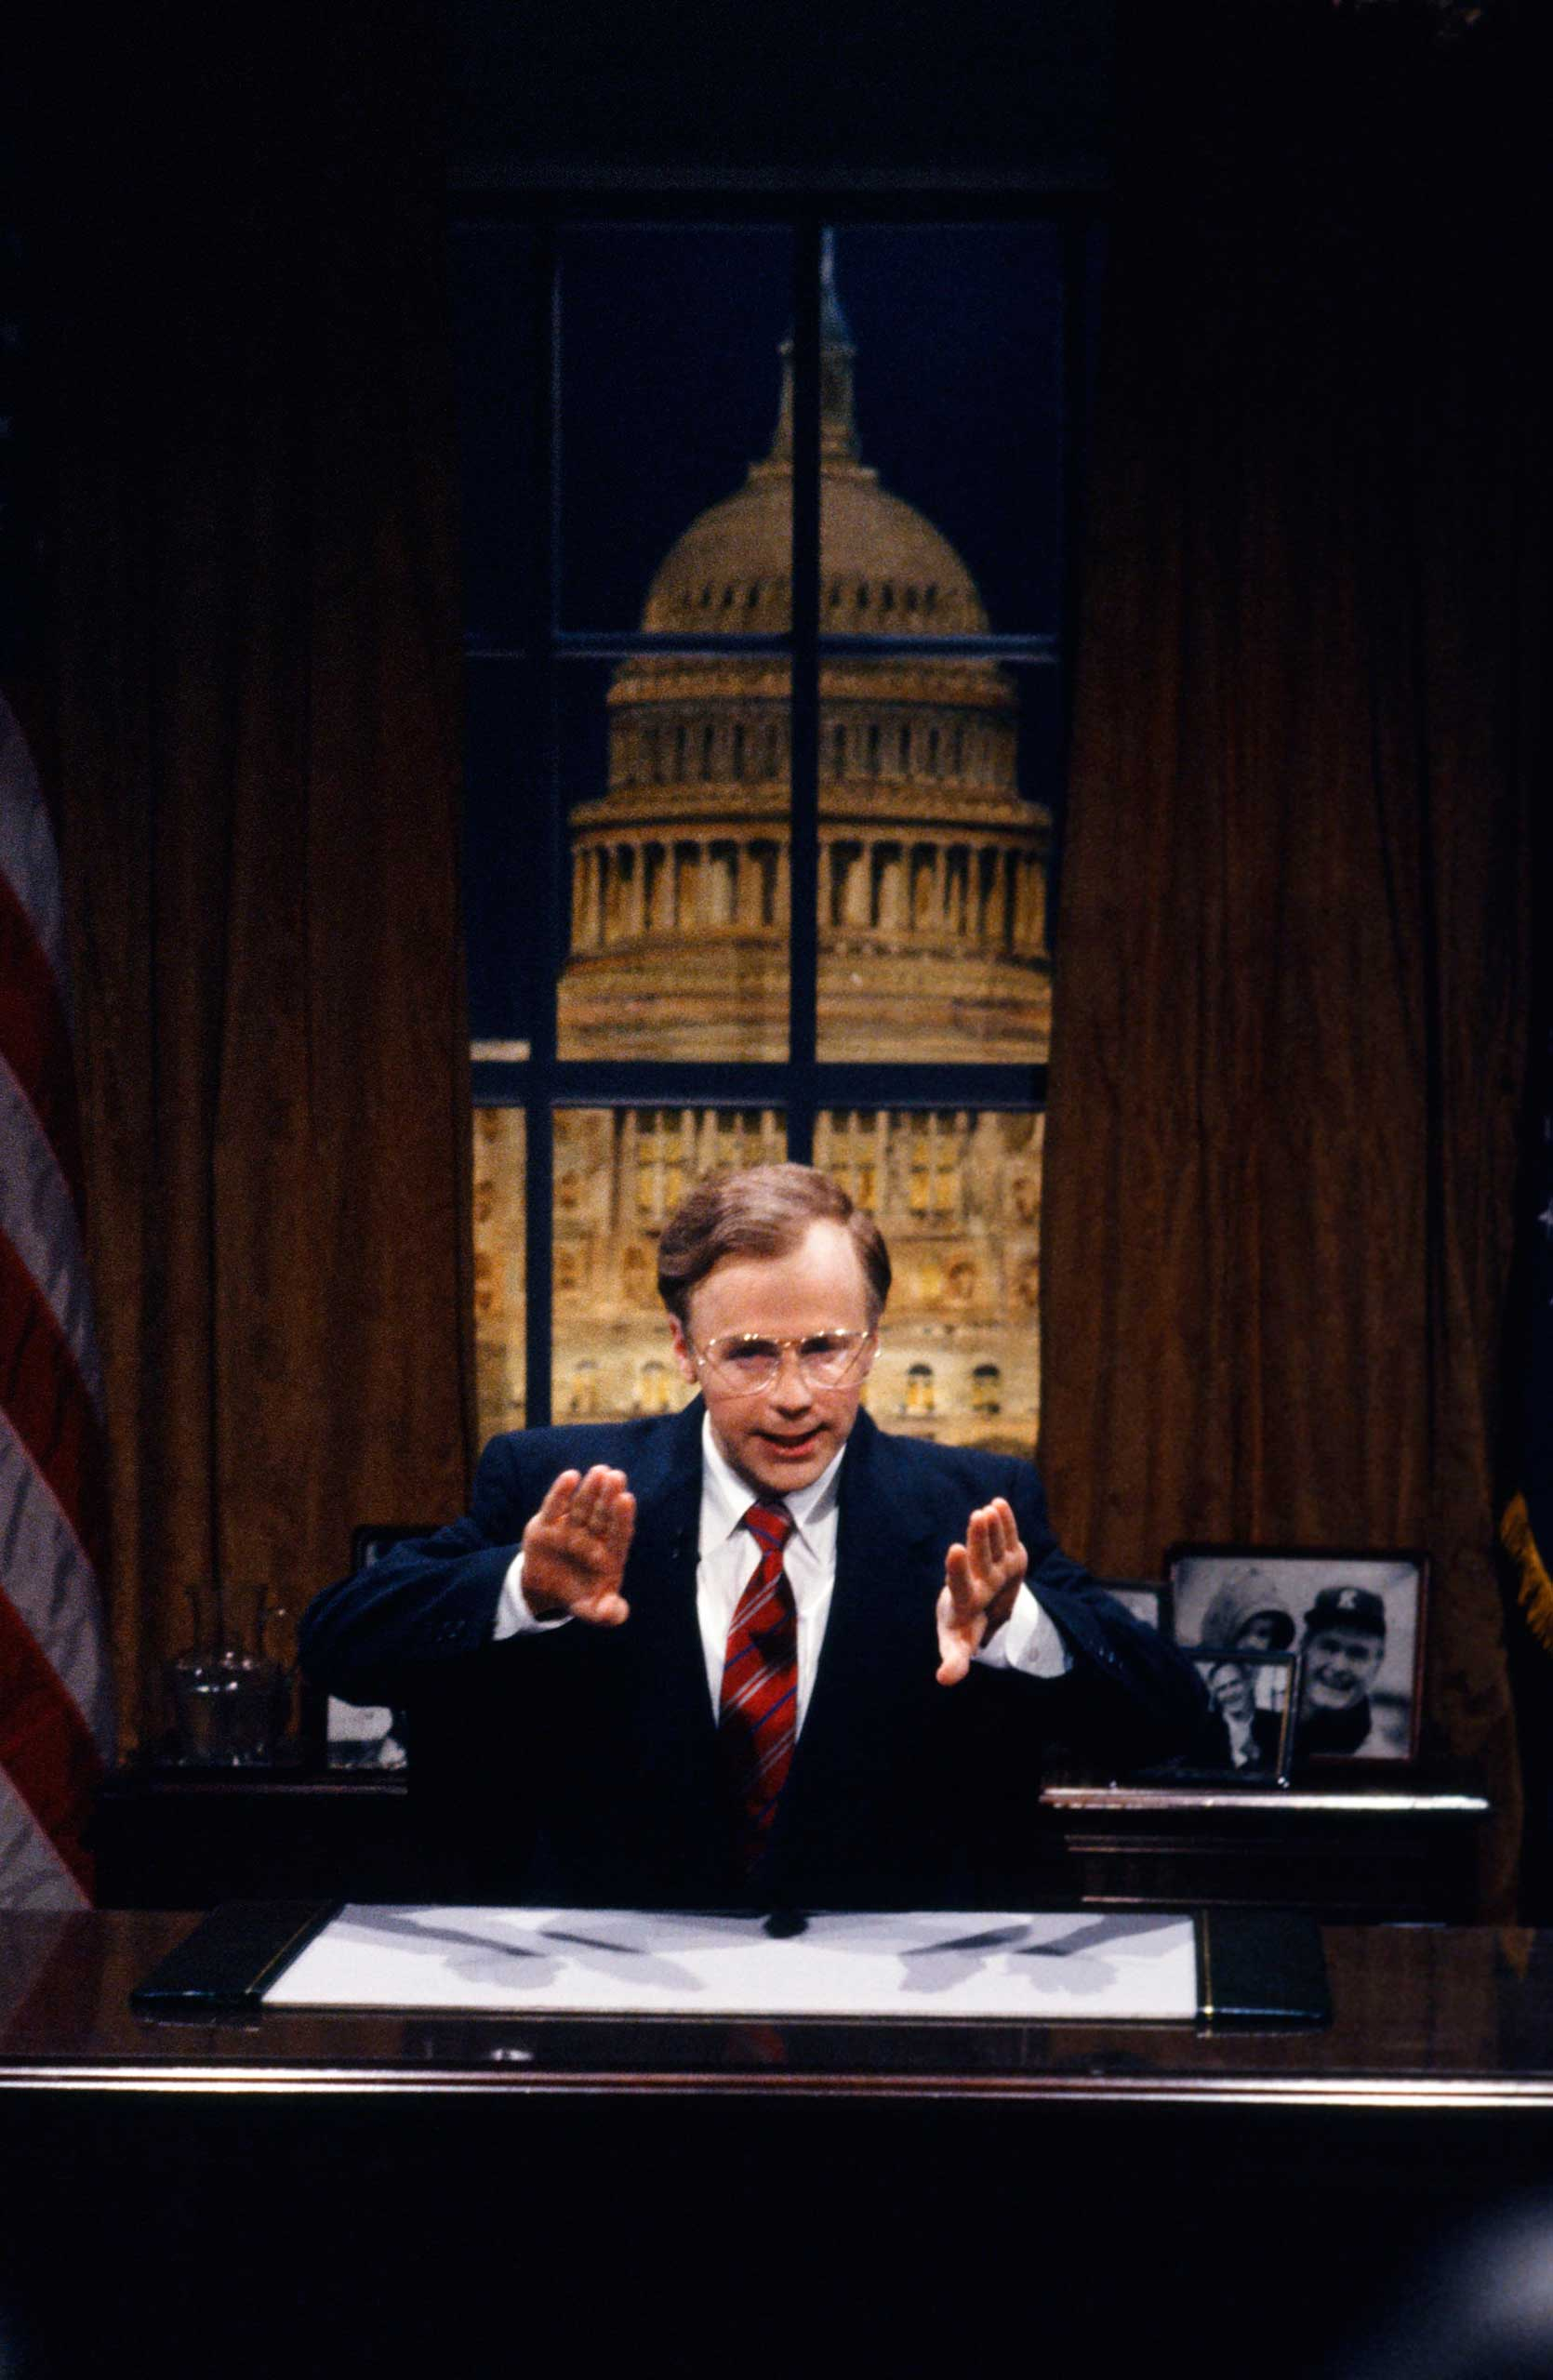 Dana Carvey as President George Bush during the 'Cuomo's Name' skit on Nov. 10, 1990.